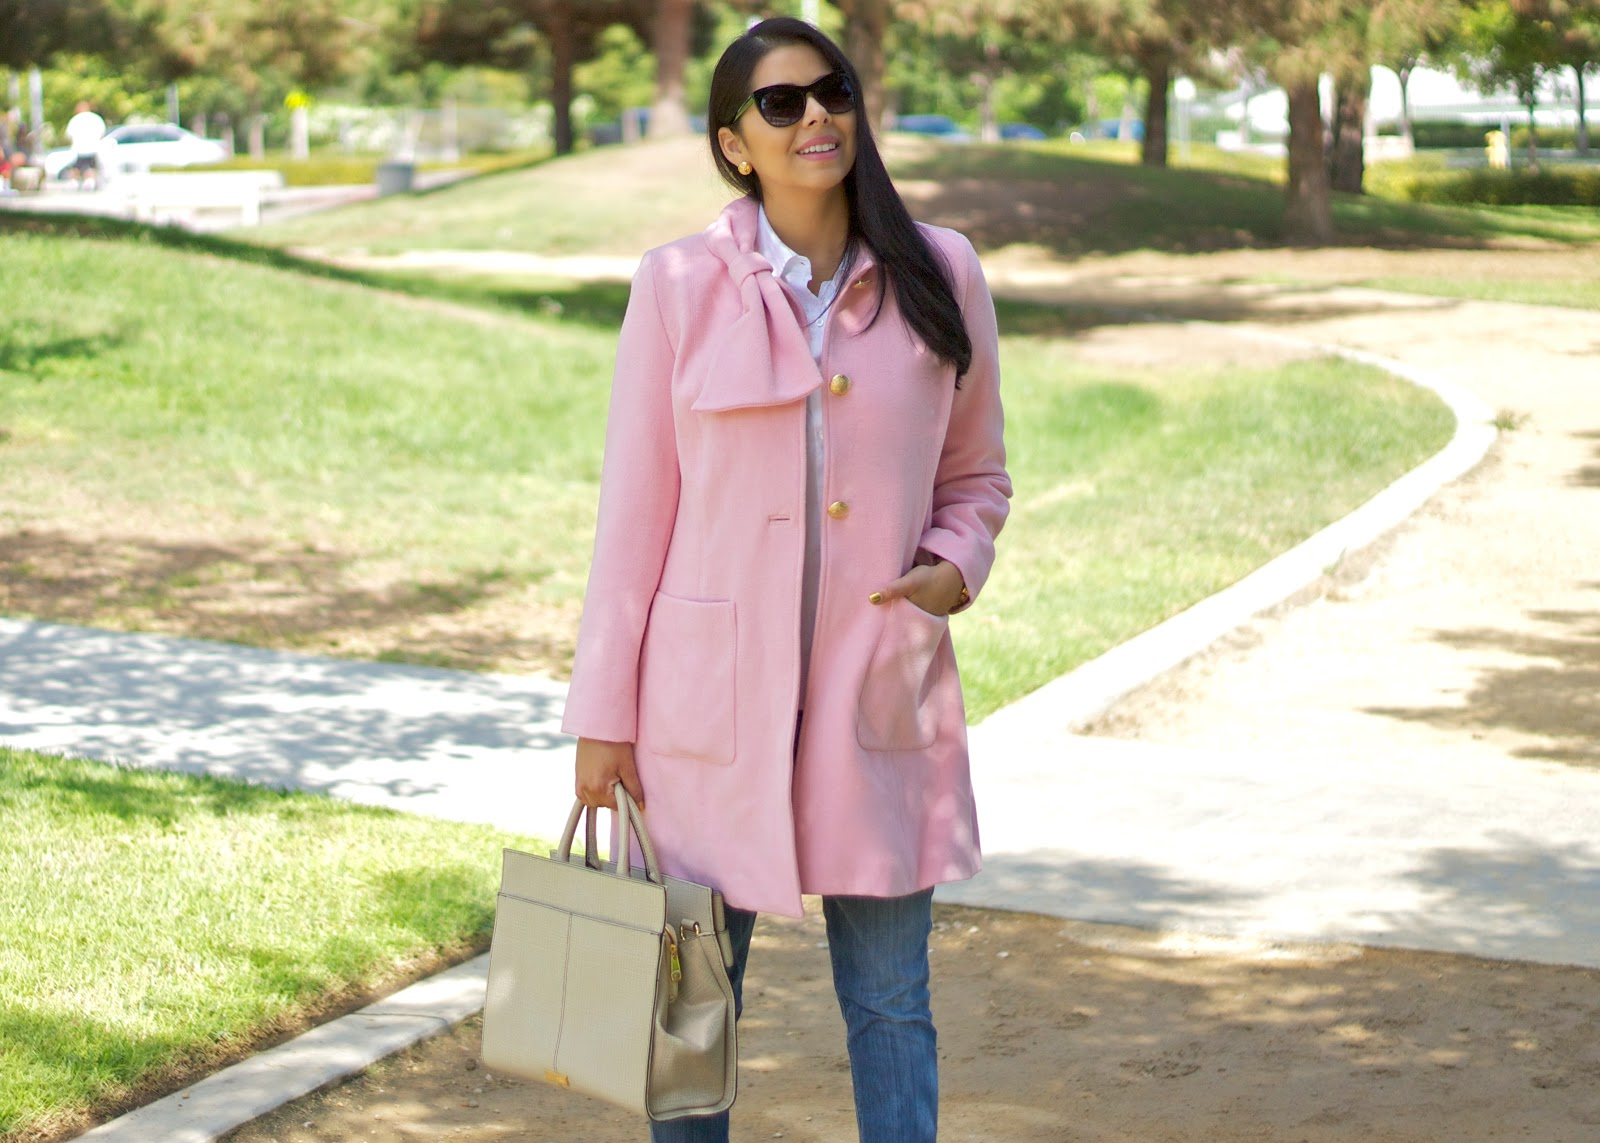 Pink coat for Fall 2014, socal fashion blogger, brunette fashion blogger, latina blogger, mexican blogger, mexican fashion blogger, latina fashion blogger, san diego street style, best of san diego street style, best of san diego fashion, best san diego bloggers